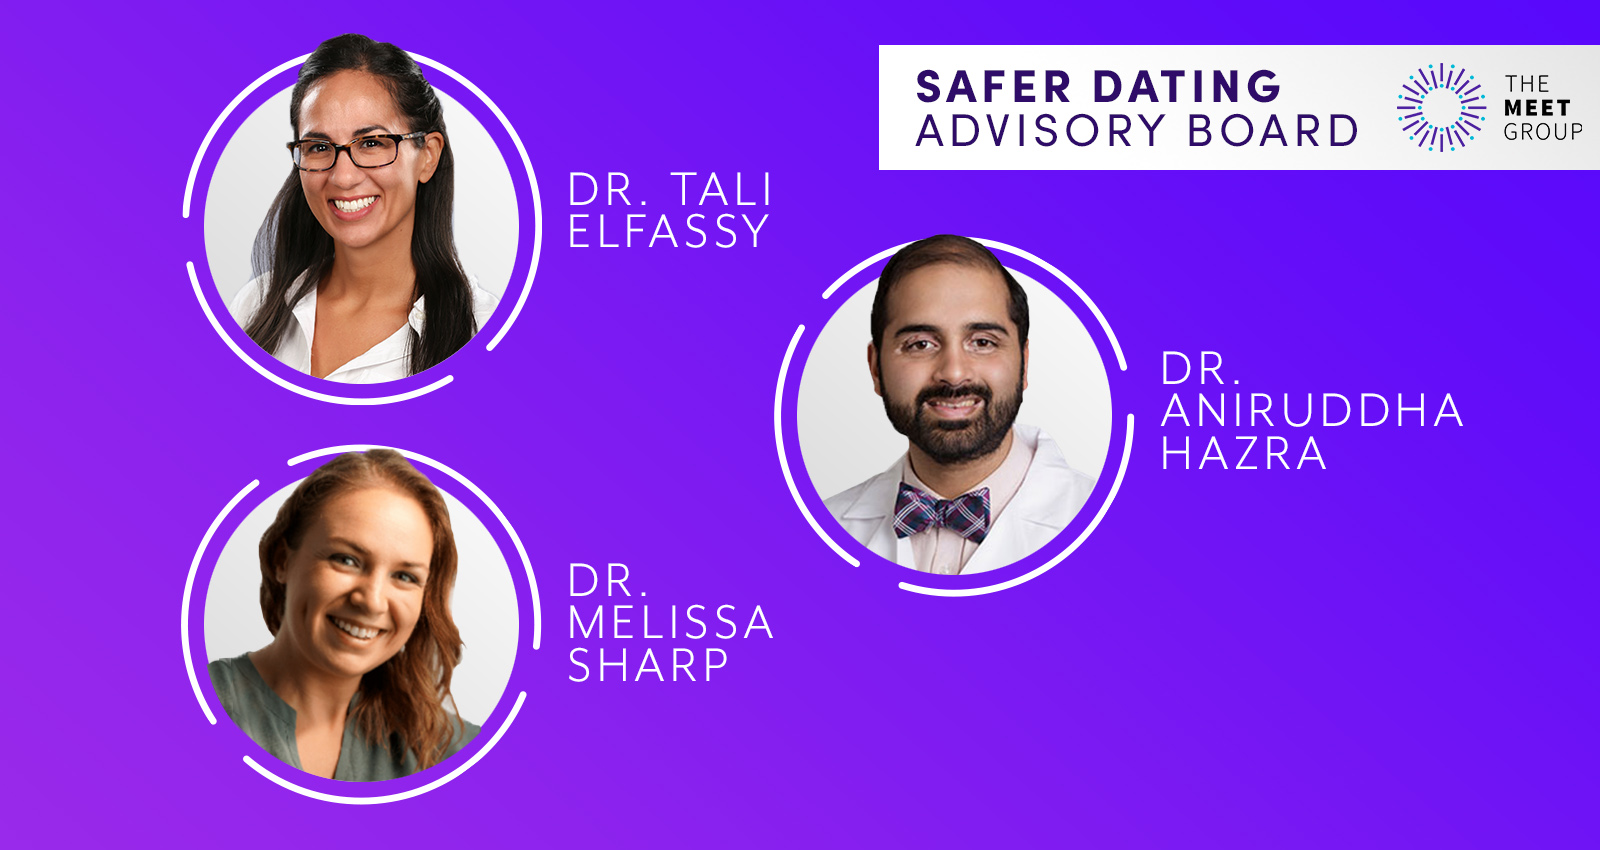 The Meet Group Forms 'Safer Dating Advisory Board'